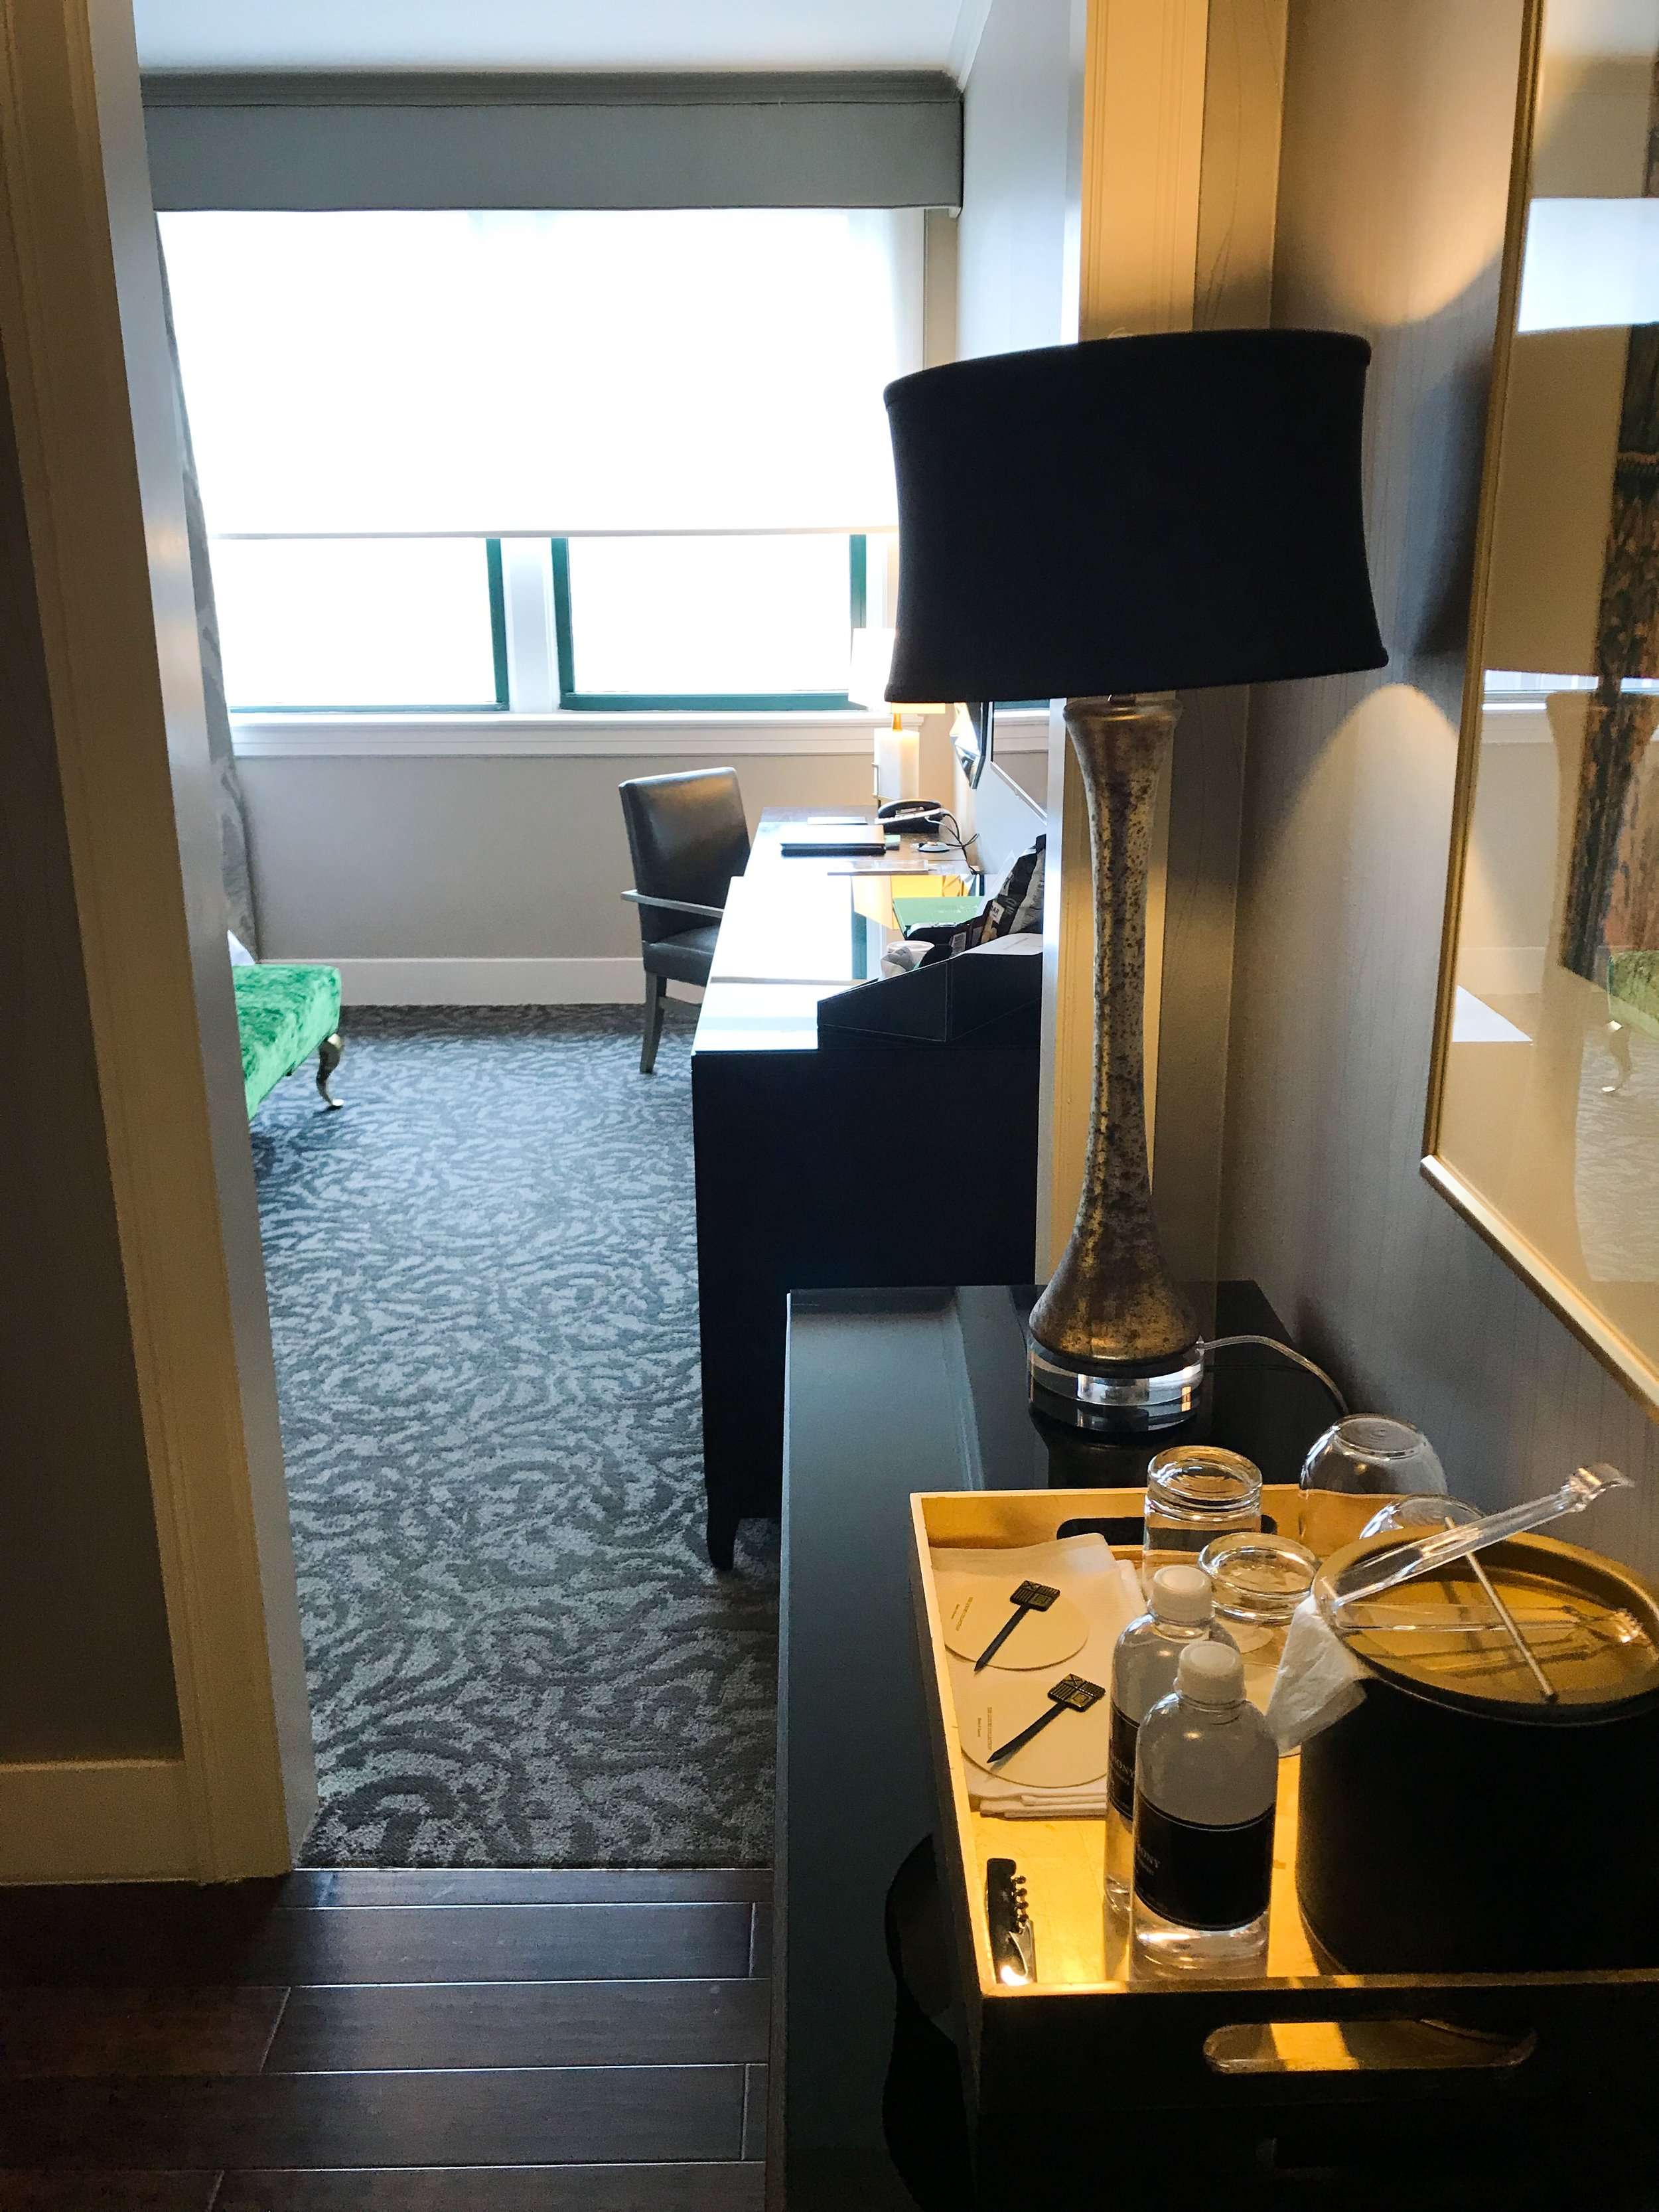 Room entryway and table.